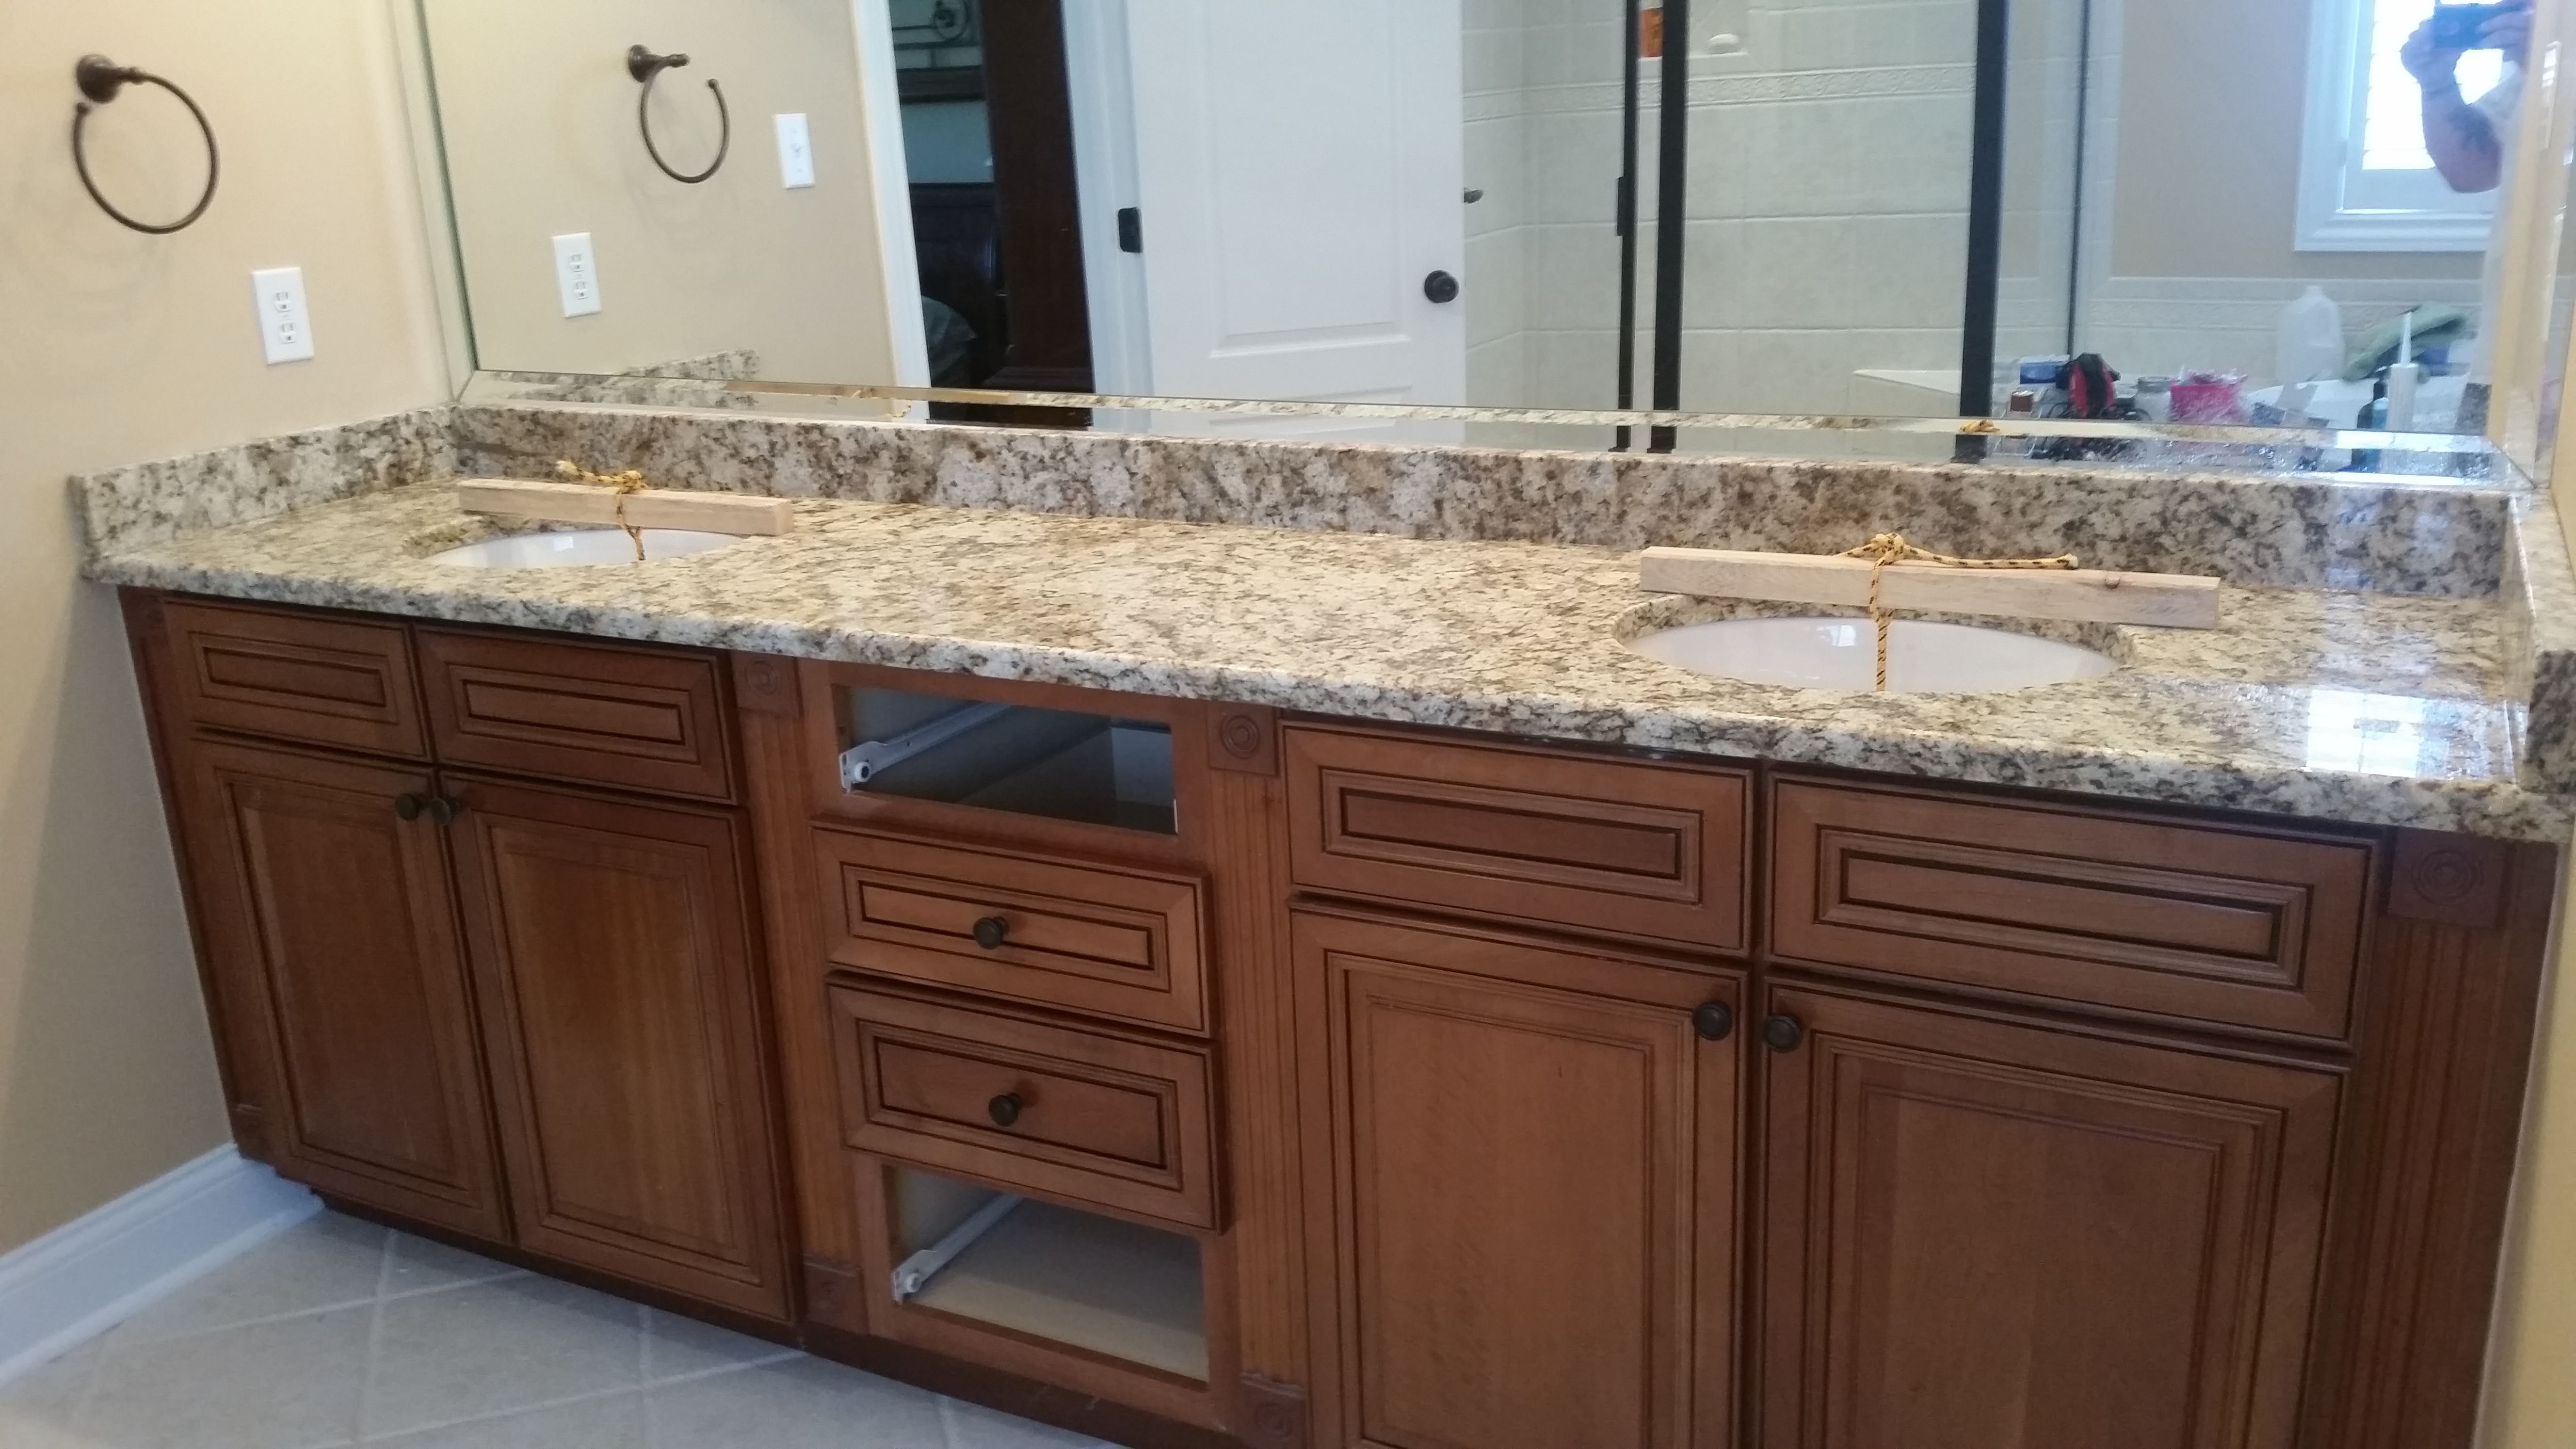 giallo napoli granite bathroom vanity install for the rafferty family knoxvilles stone interiors showroom